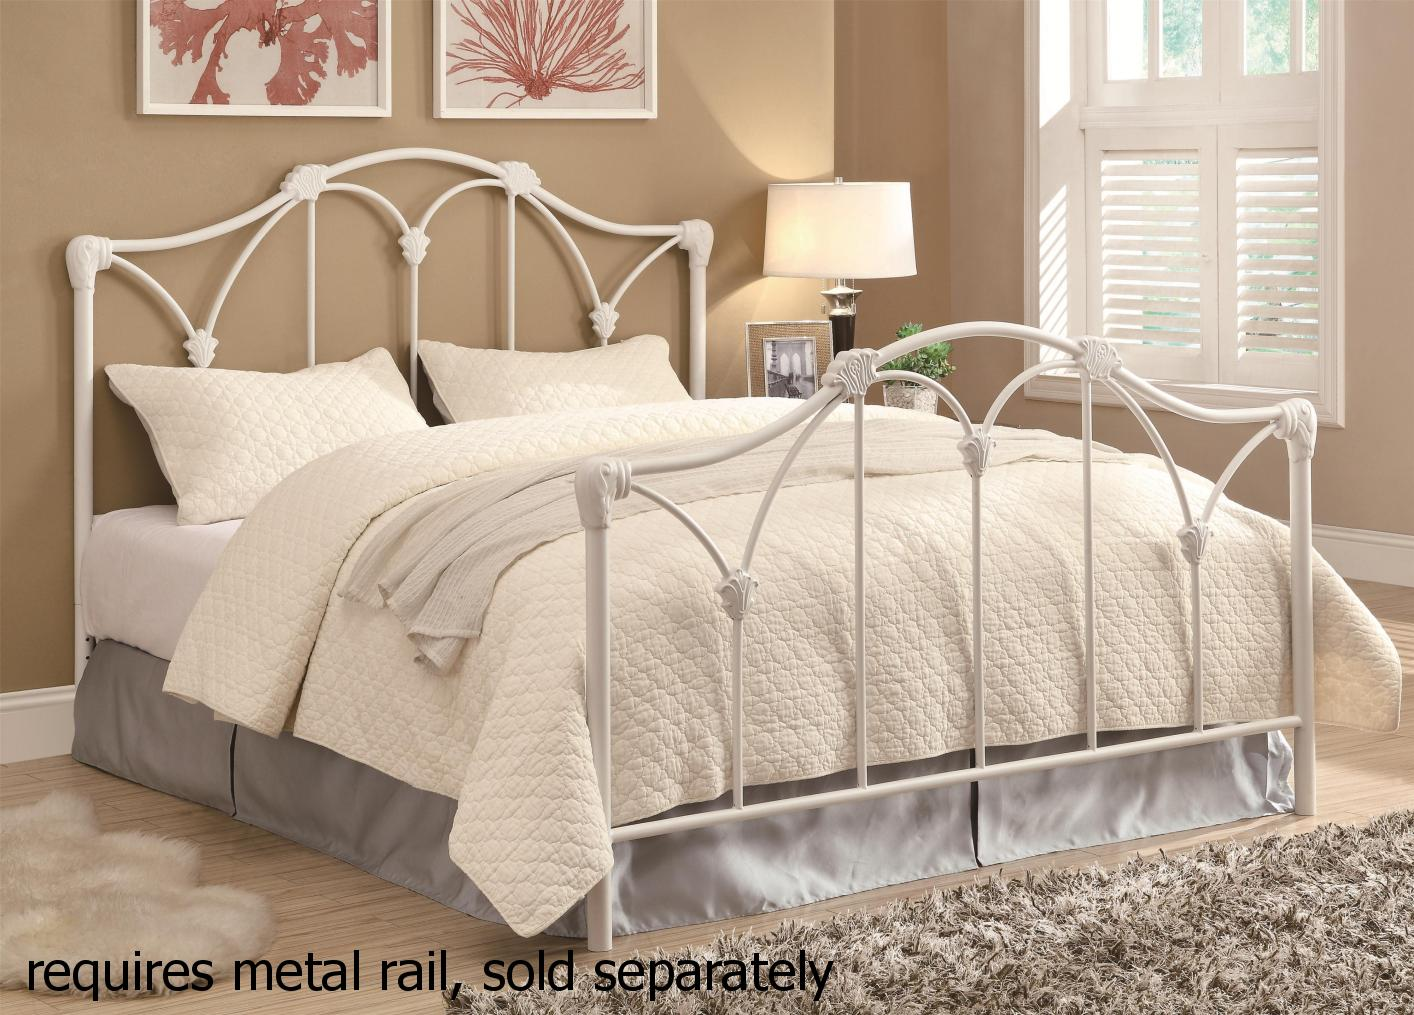 Beauteous Metal Bed Metal Bed Furniture Outlet Los Angeles Ca Metal Bed Frame Ikea Metal Bed Frame Near Me houzz-03 White Metal Bed Frame